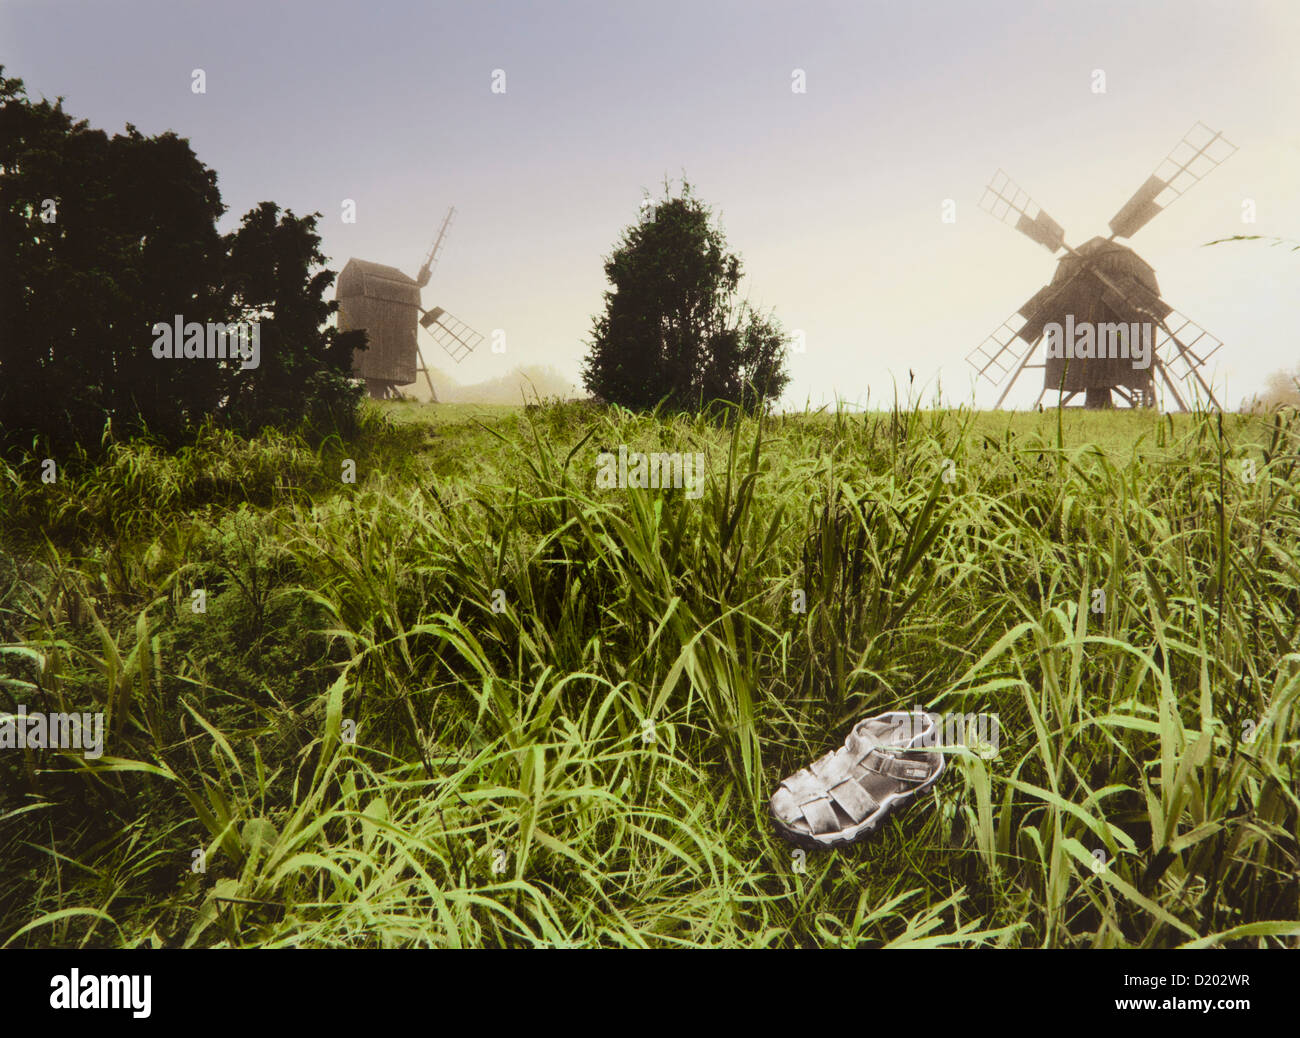 Child's shoe in the grass in front of wind mills, Oeland island, Sweden, Europe - Stock Image